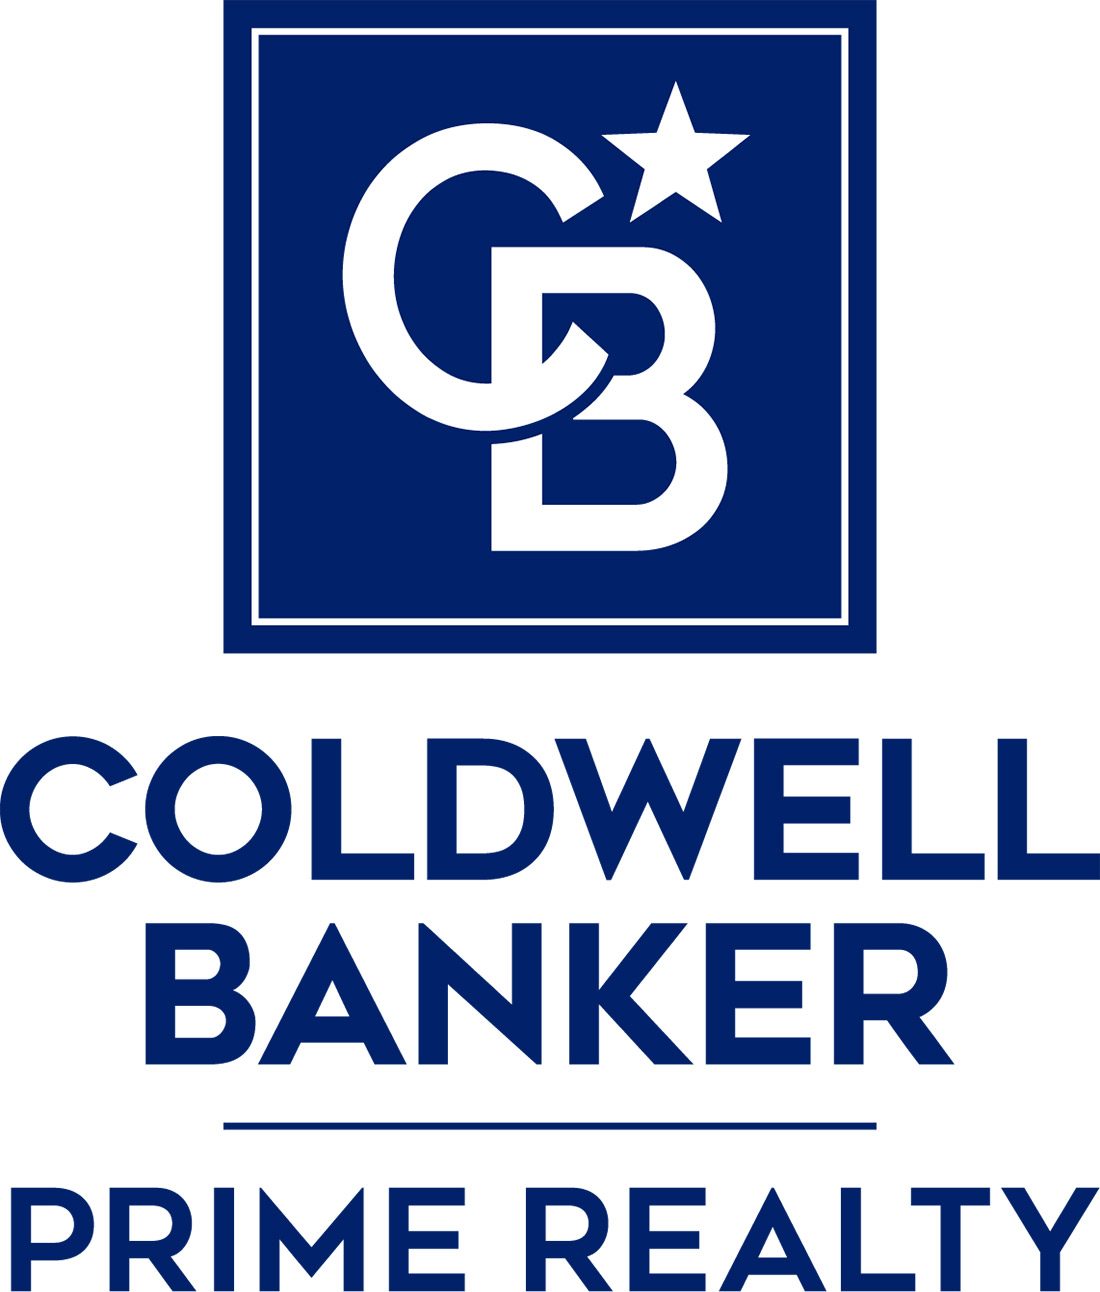 Coldwell Banker Prime Realty - Carbondale, Carterville, Energy, Marion, and Murphysboro